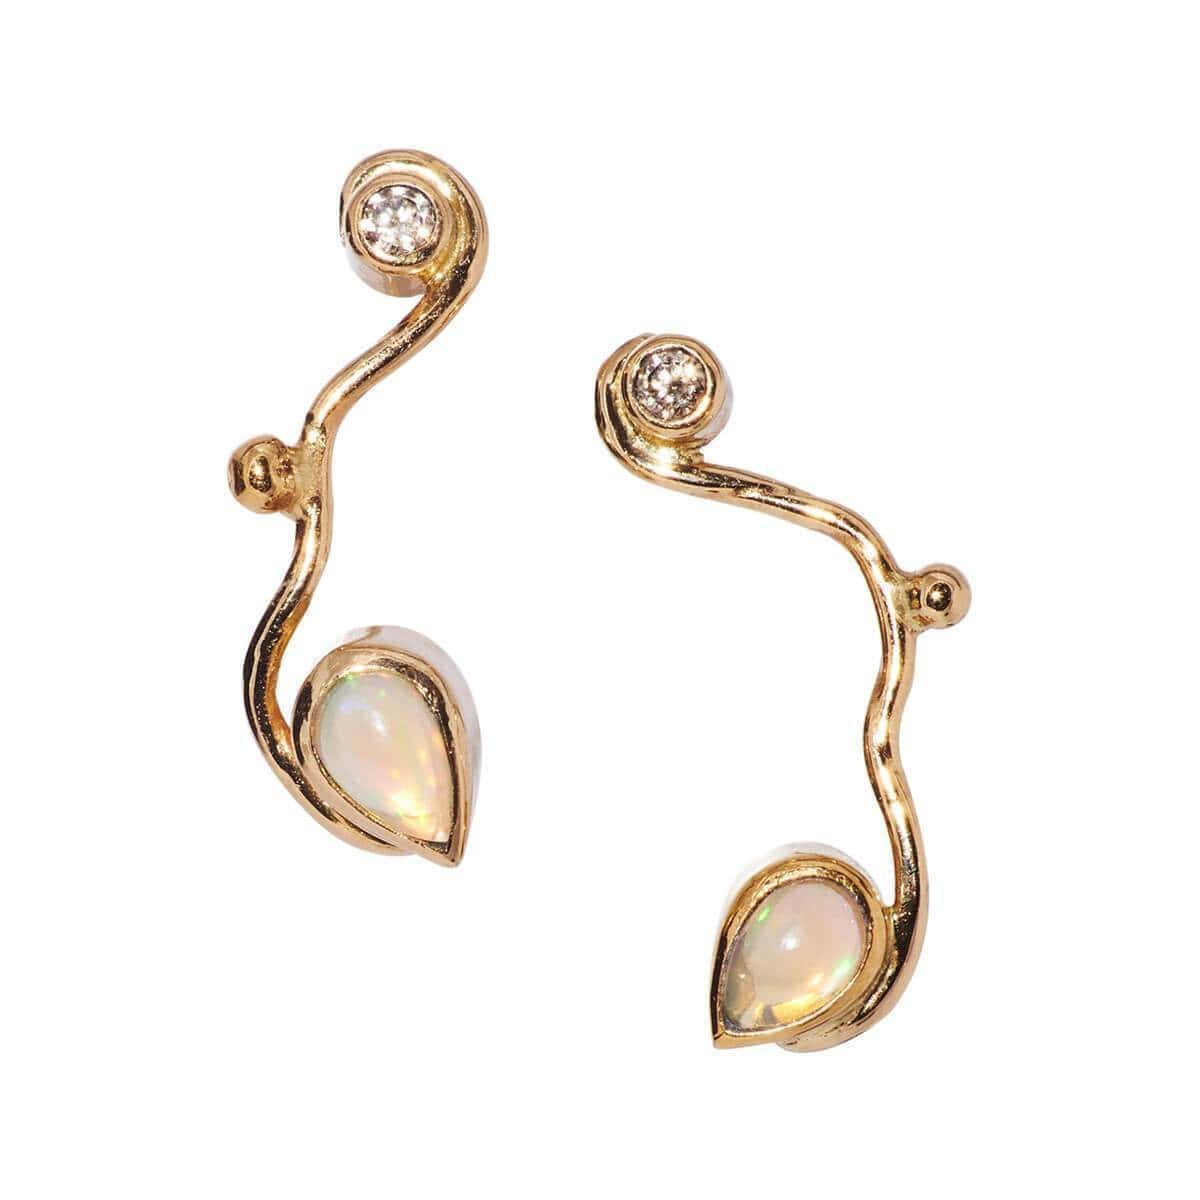 Seafire Earrings With Champagne Diamond And Opal, Bergsoe